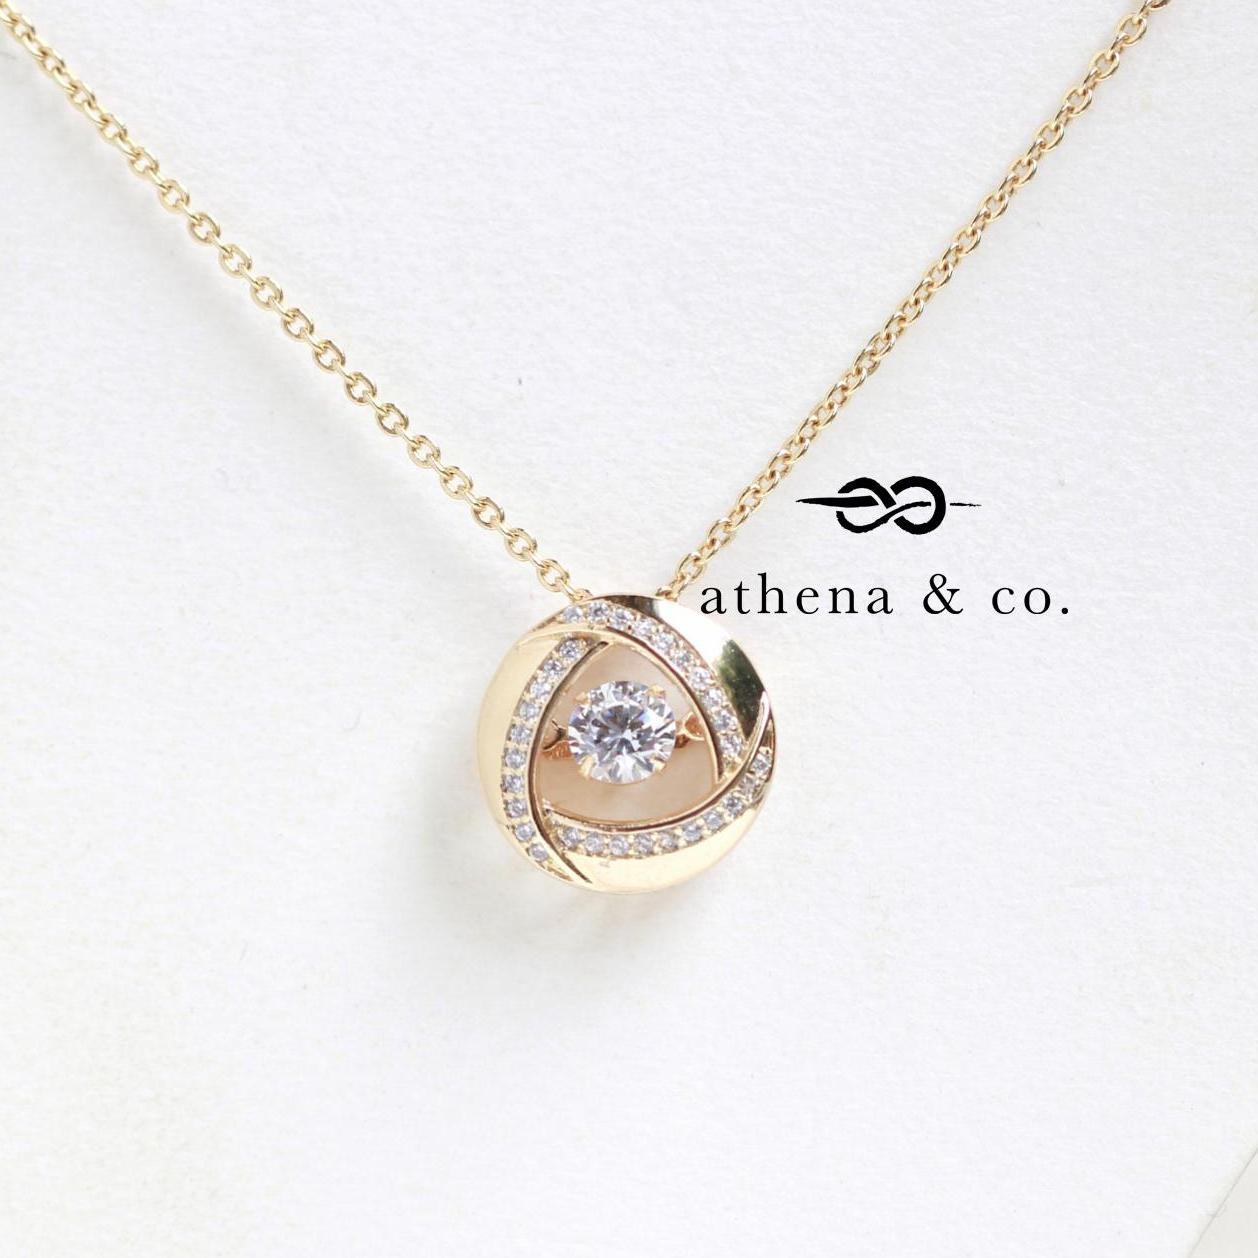 Necklace For Women For Sale Womens Necklace Online Brands Prices